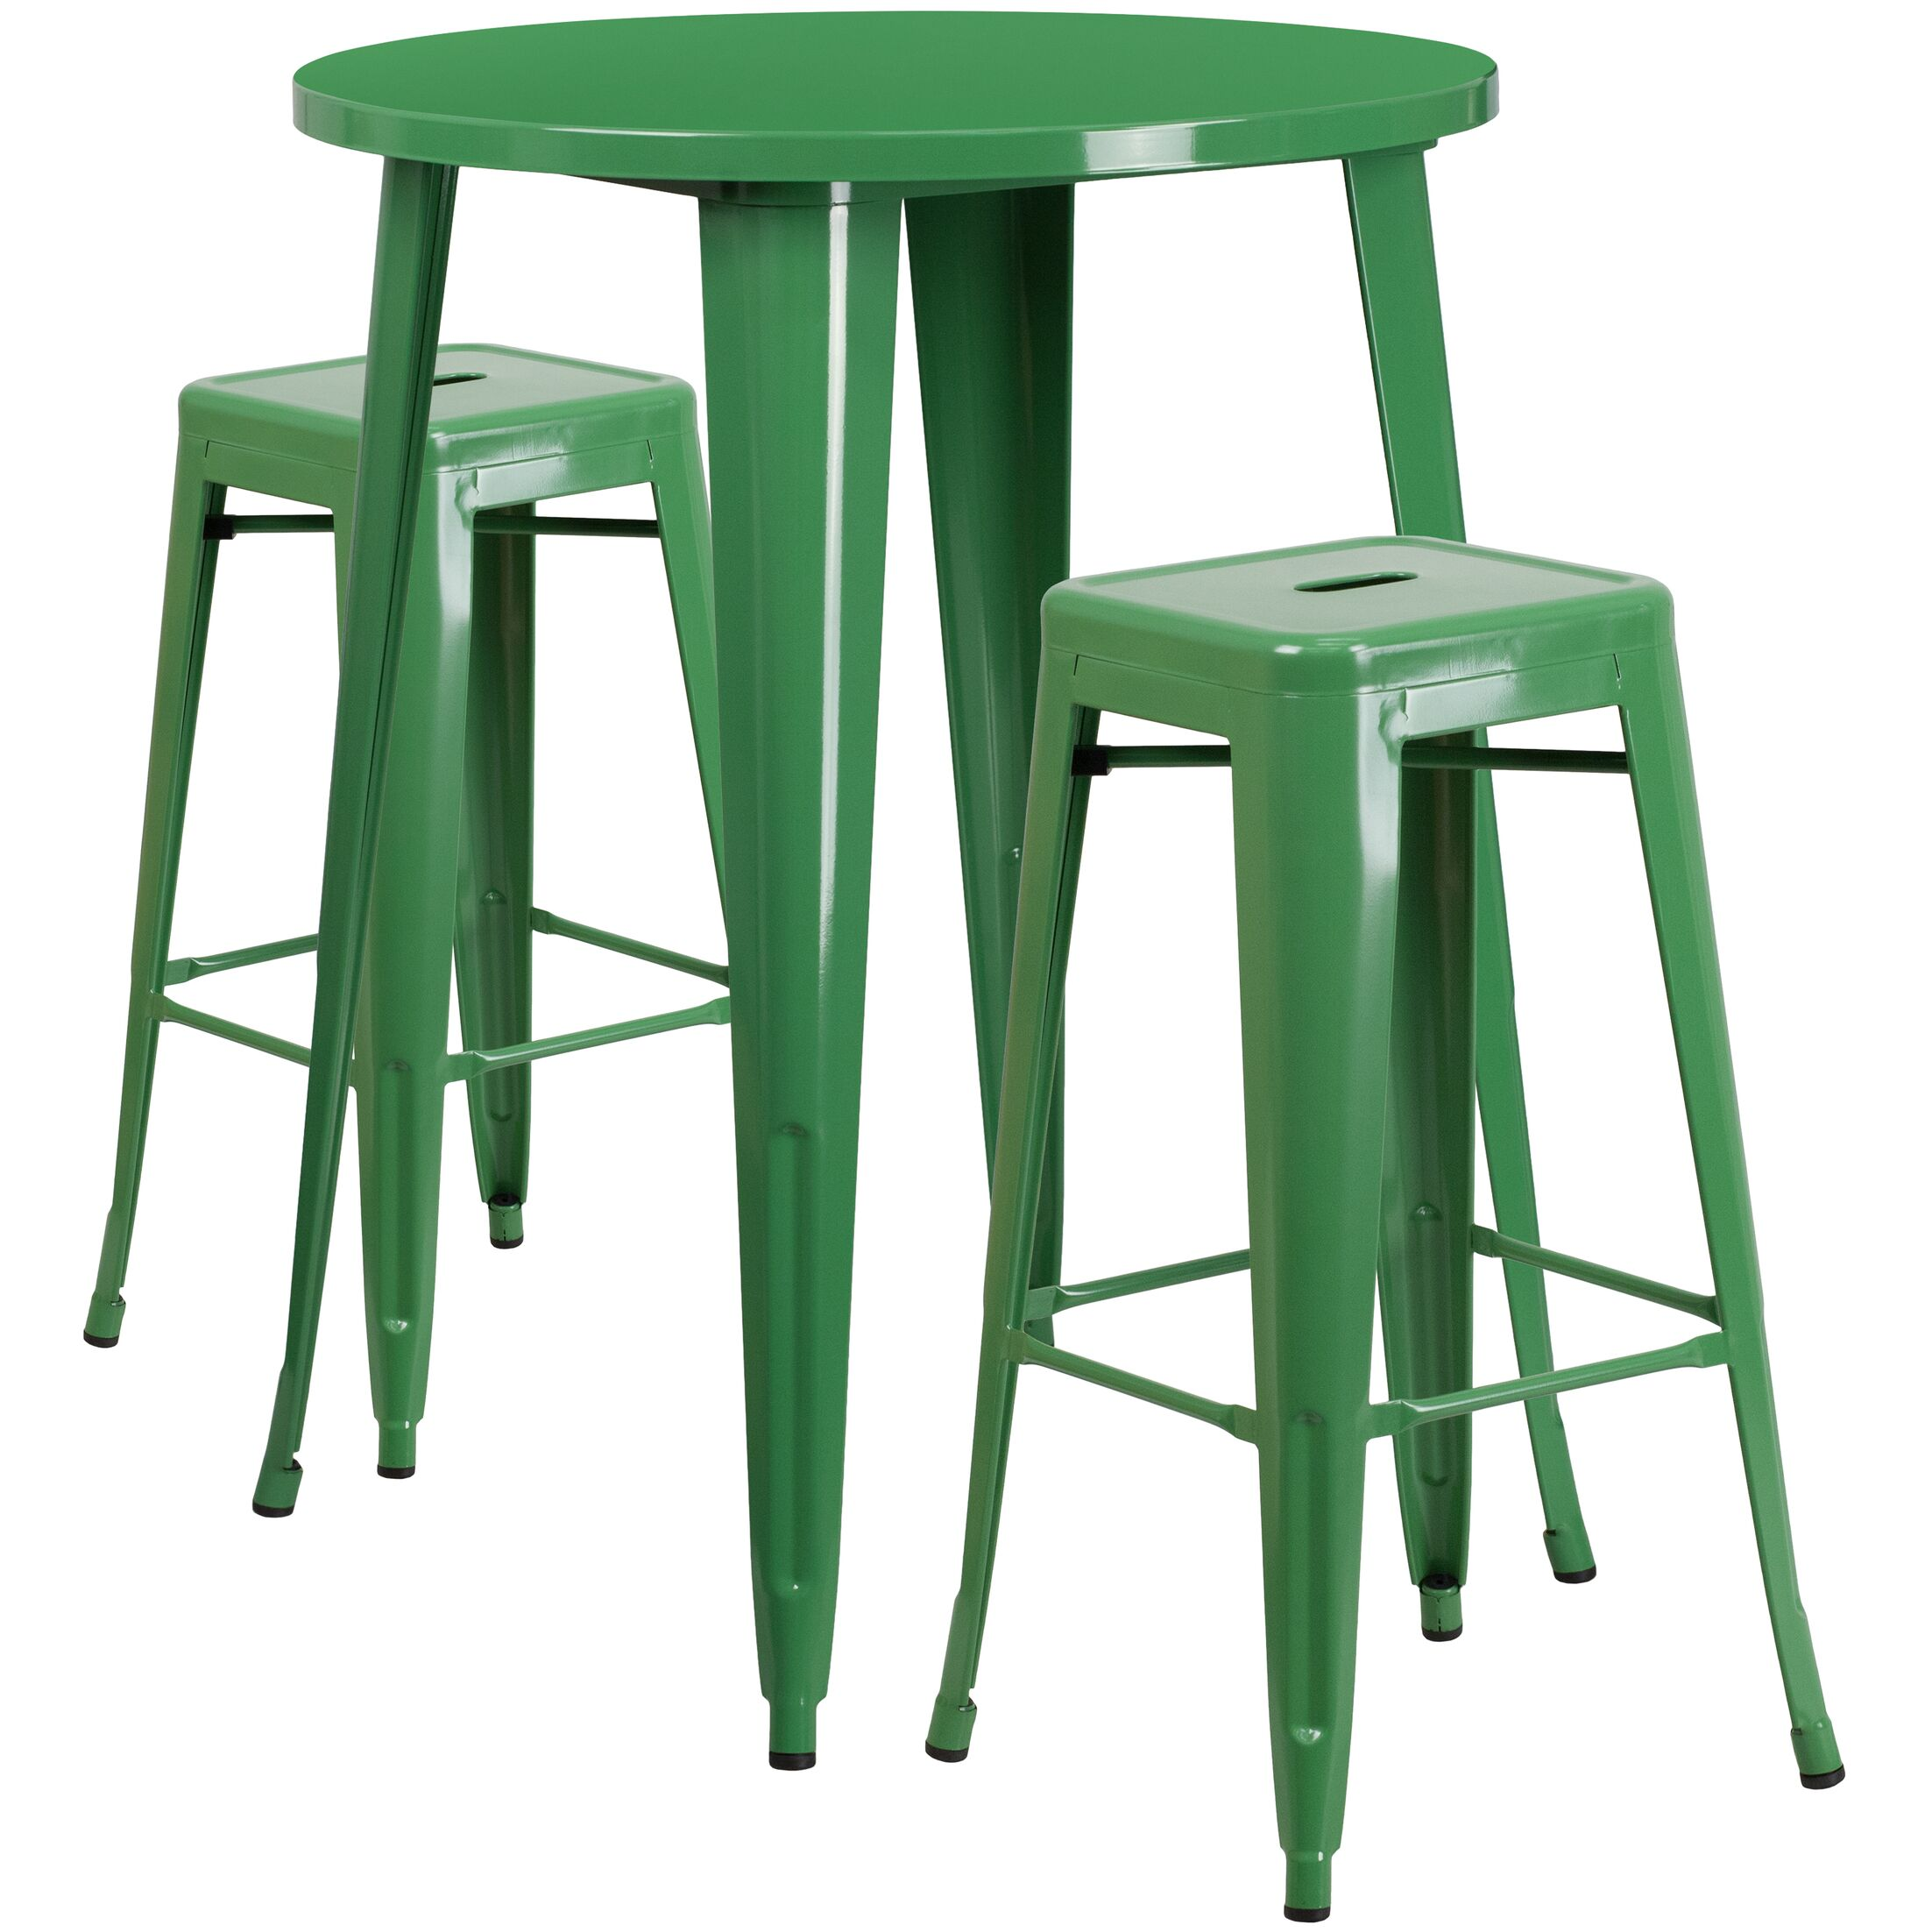 Mcmorrow 3 Piece Bar Height Dining Set Color: Green, Table Size: 41